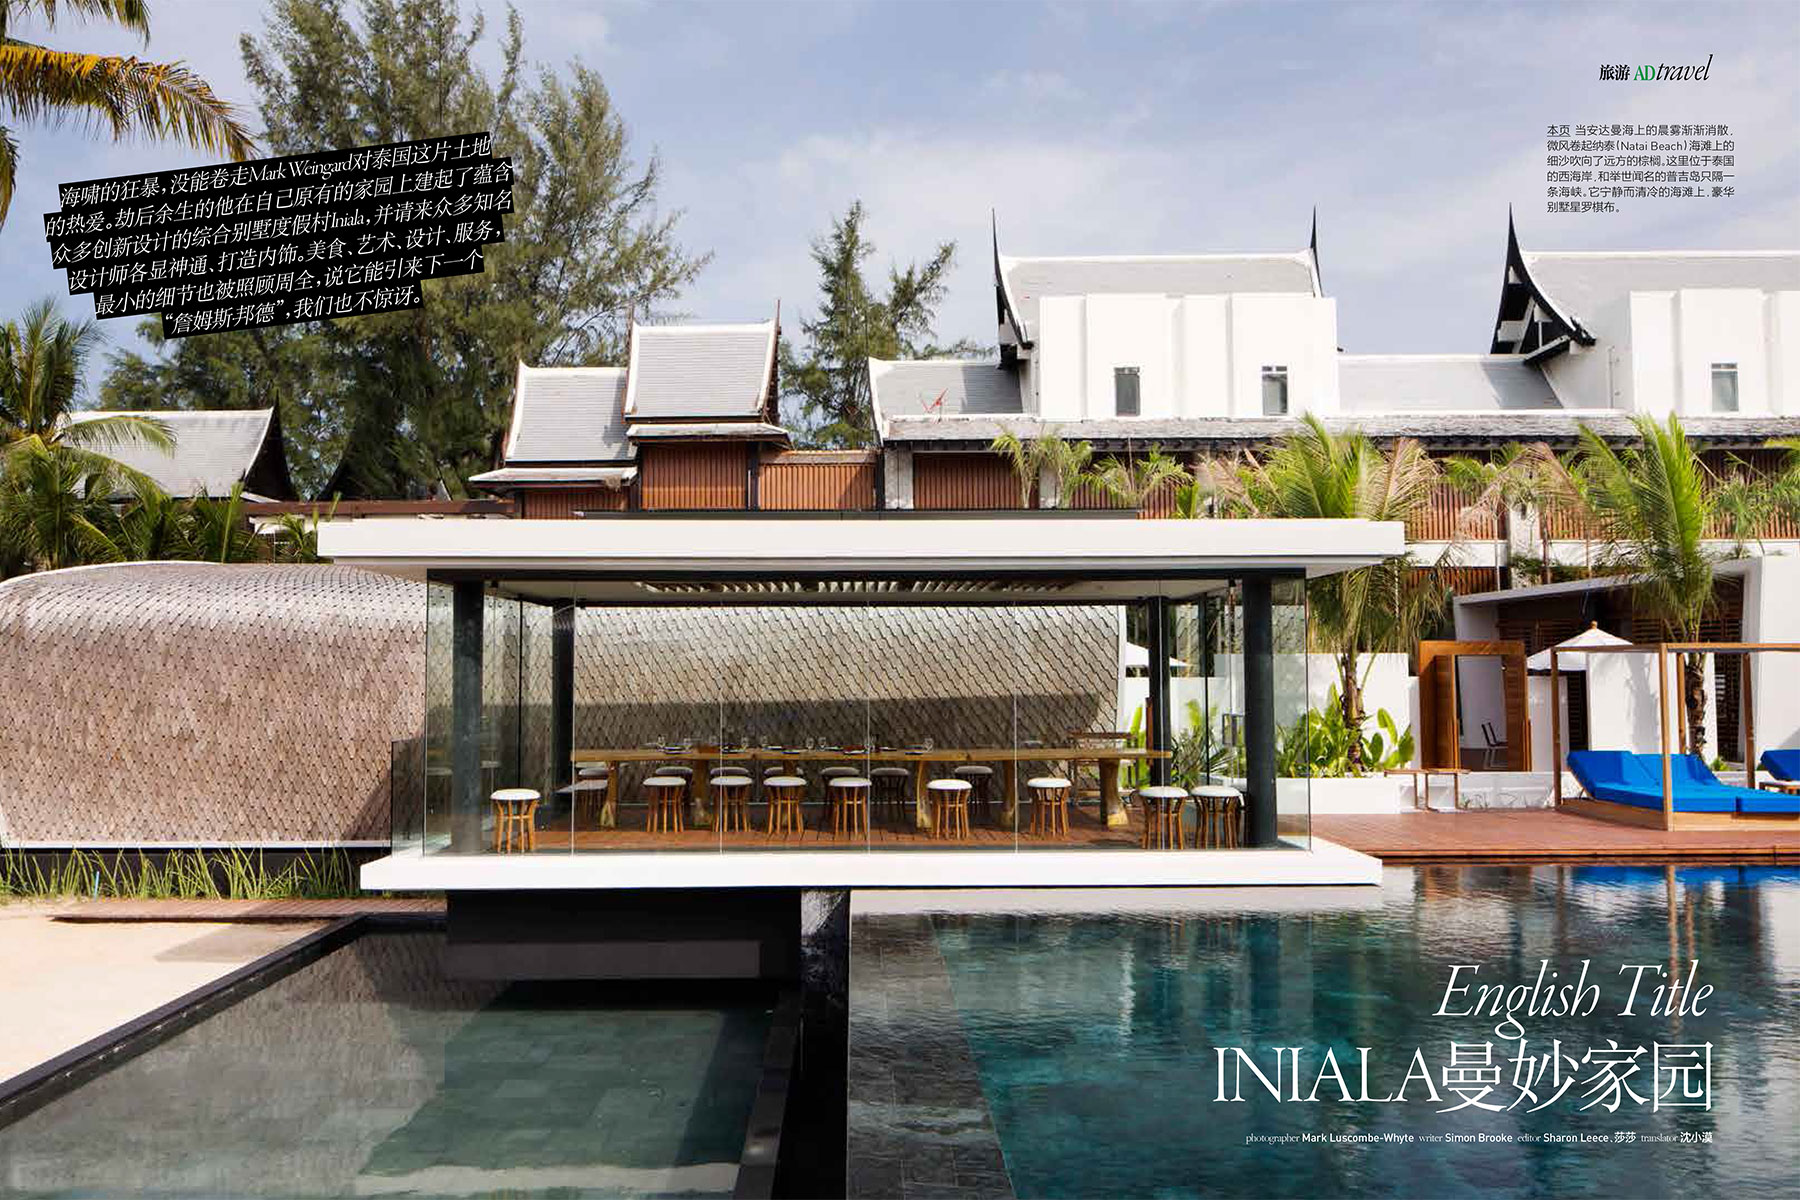 Iniala. Architectural Digest, China.